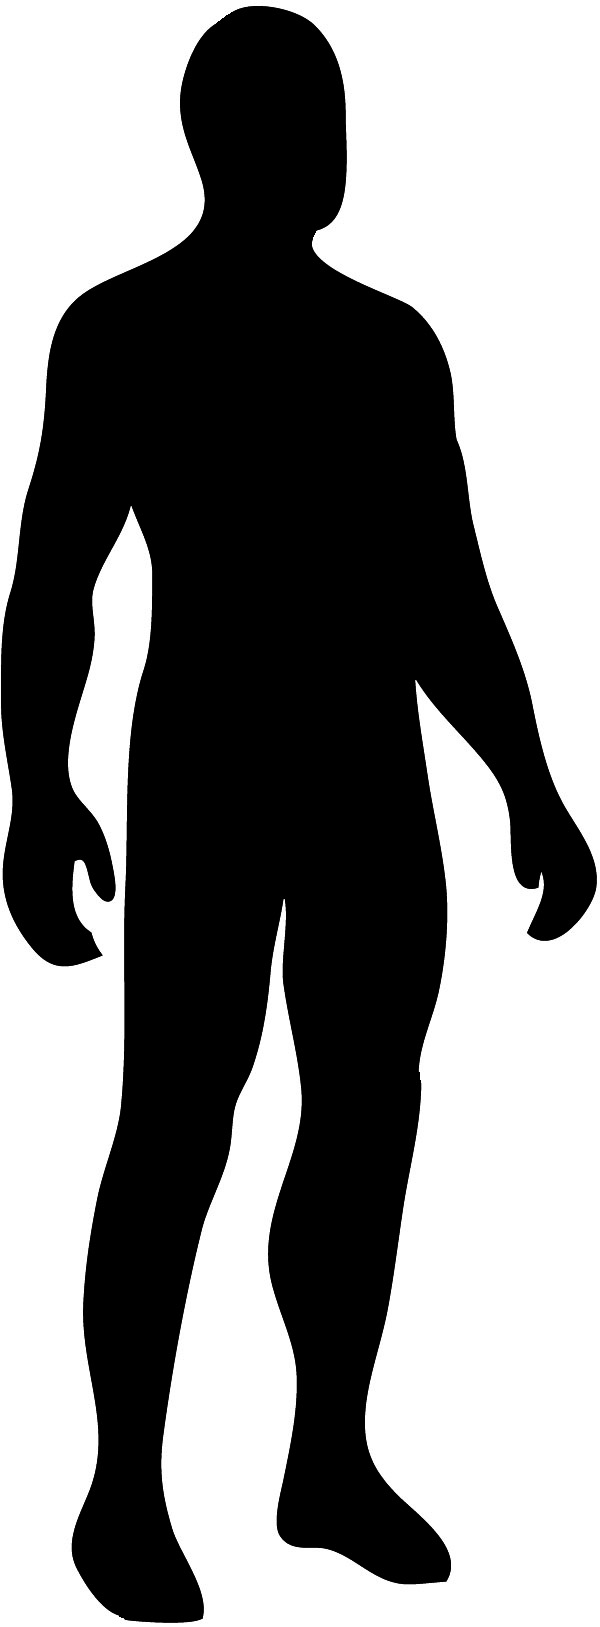 10 Silhouette Human Free Cliparts That Y-10 Silhouette Human Free Cliparts That You Can Download To You-10